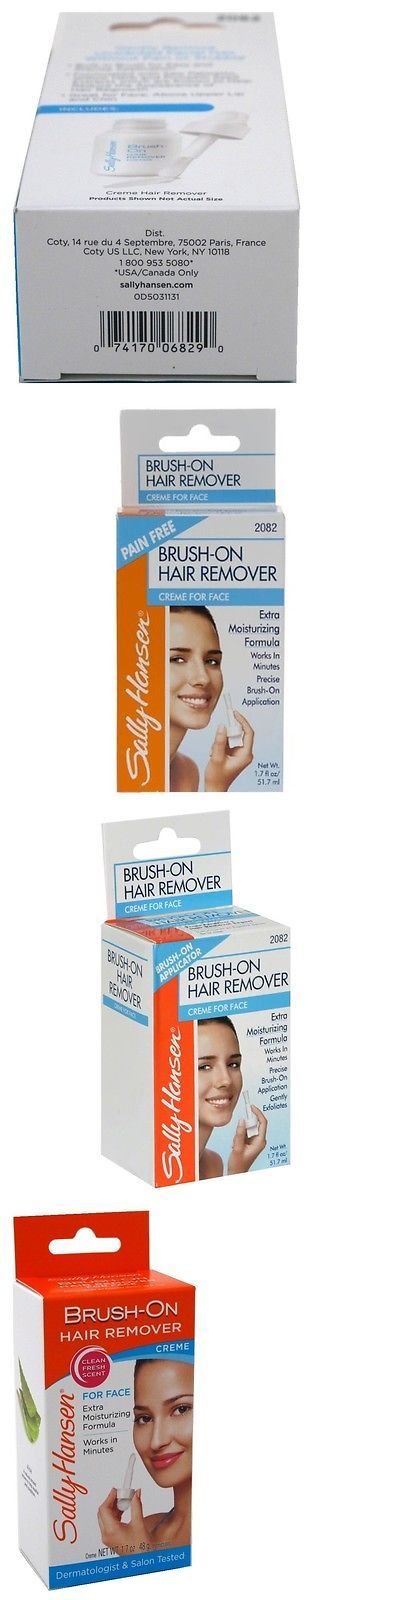 Hair Removal Creams and Sprays: Sally Hansen Brush-On Hair Remover Creme For Face 1.7 Oz (Pack Of 11) -> BUY IT NOW ONLY: $84.22 on eBay!